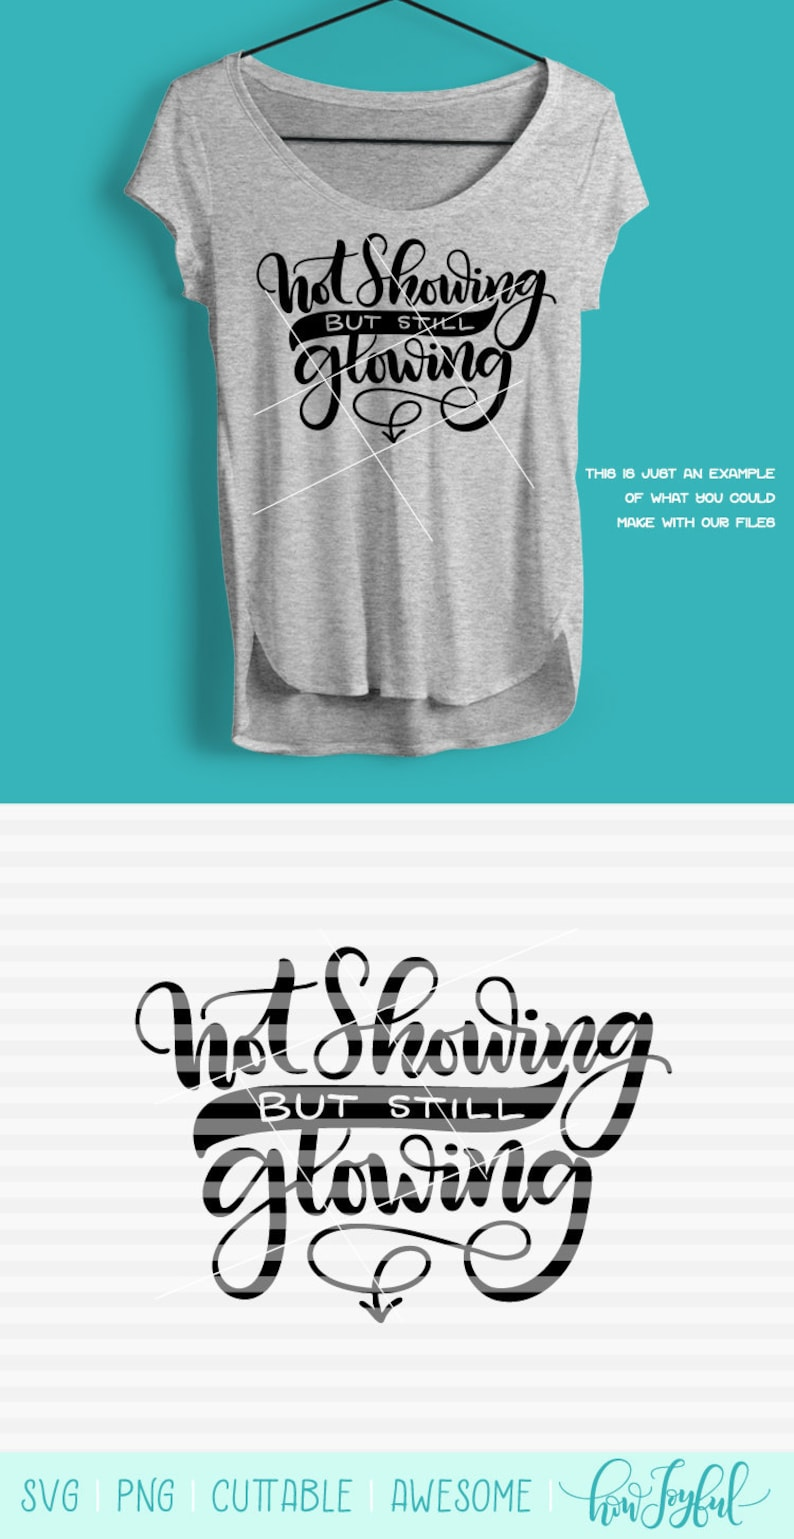 Not showing, but still glowing - Preggers - pregnant - SVG - PDF - DXF -  hand drawn lettered cut file - pregnancy announcement